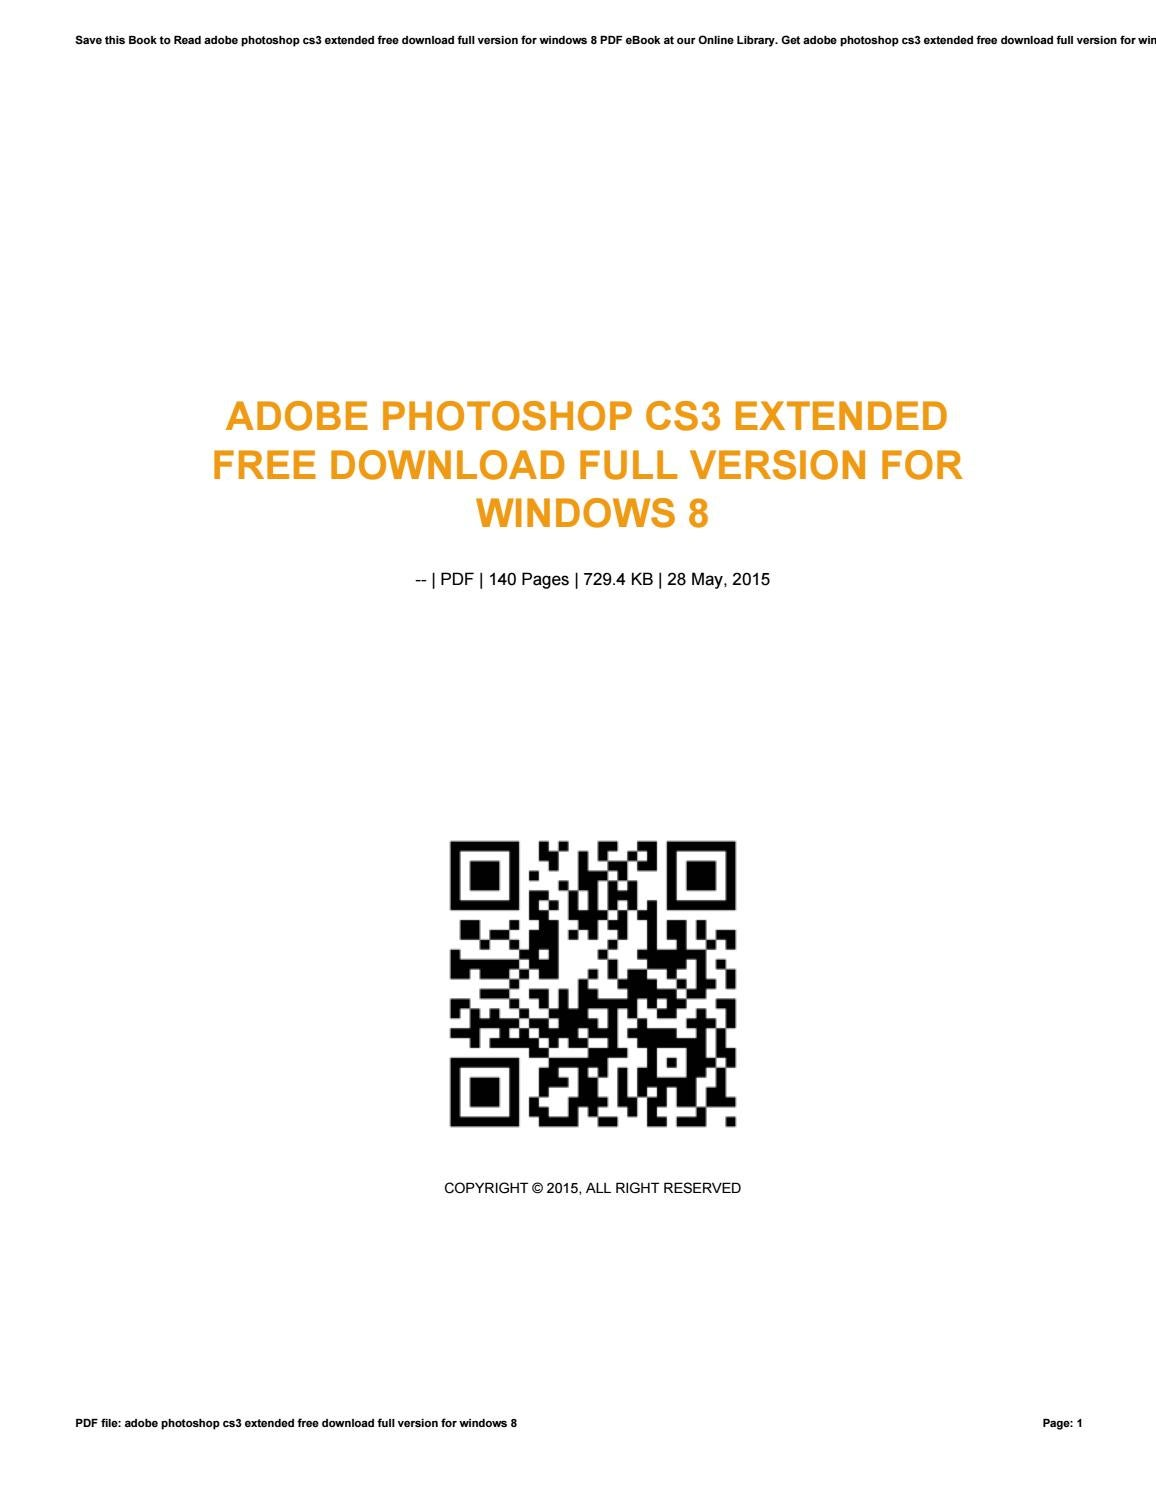 Adobe photoshop cs3 extended free download full version for windows 8 by  resman76andar - issuu